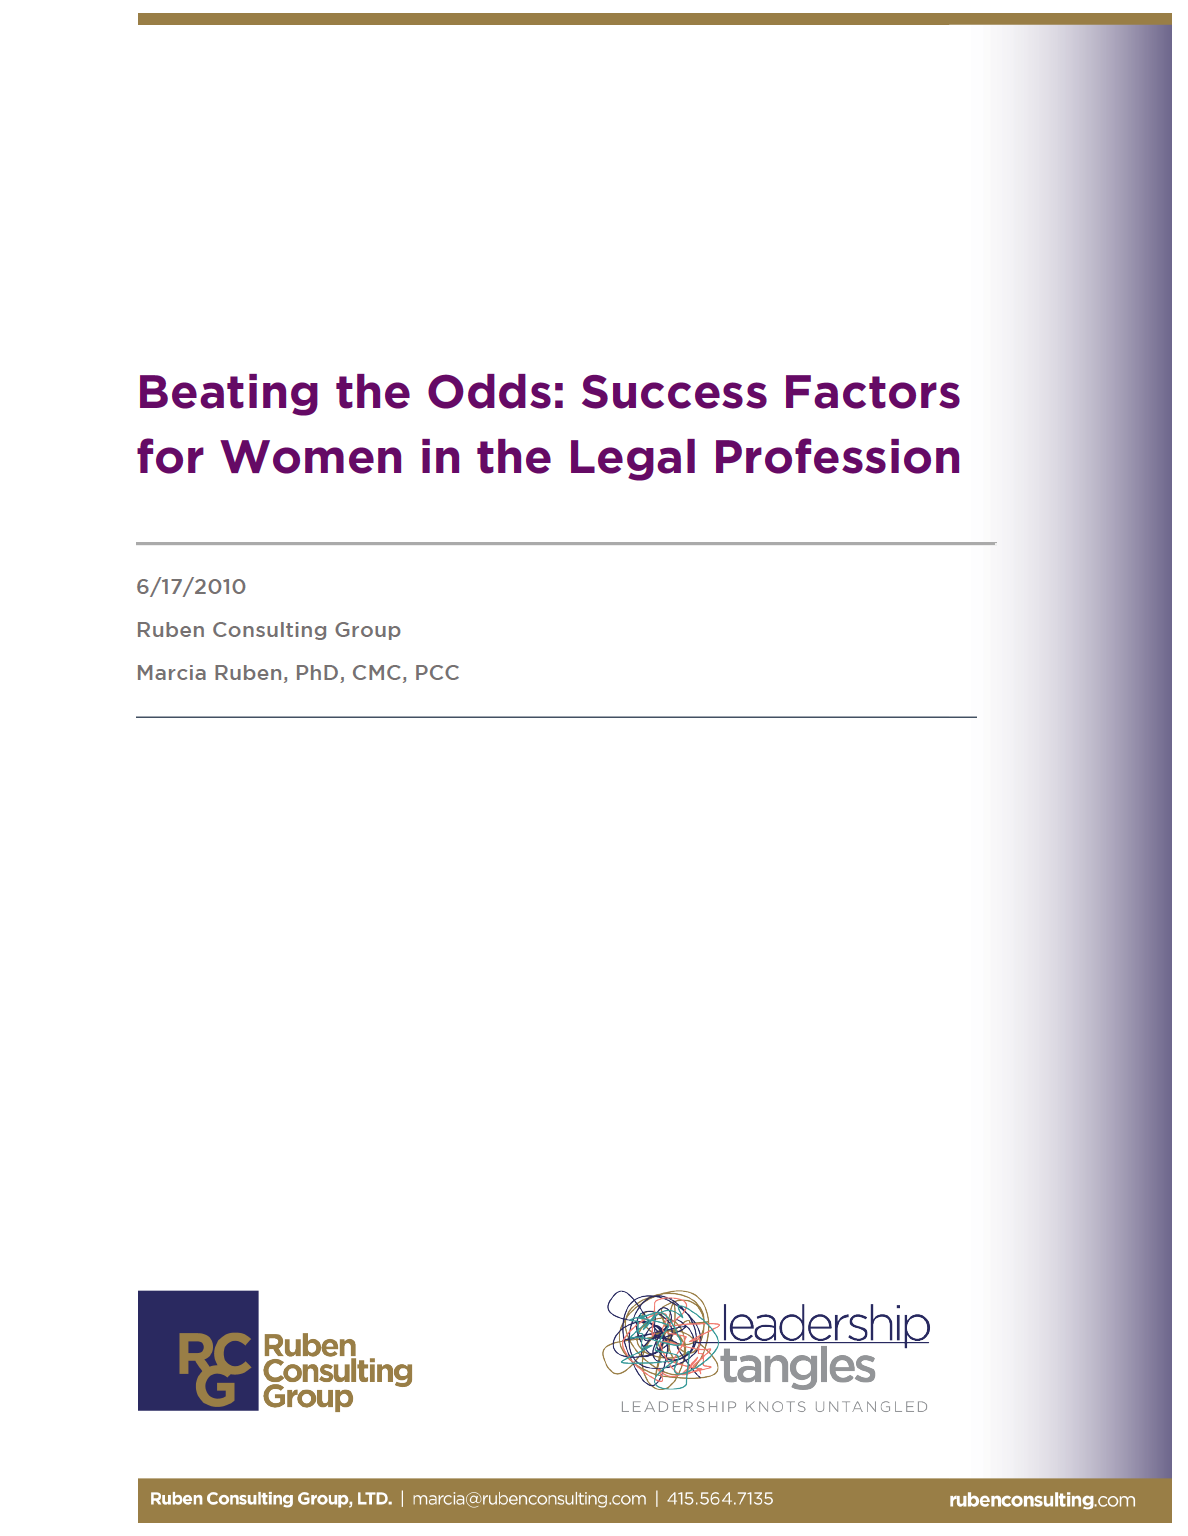 Beating the Odds: Success Factors for Women in the Legal Profession